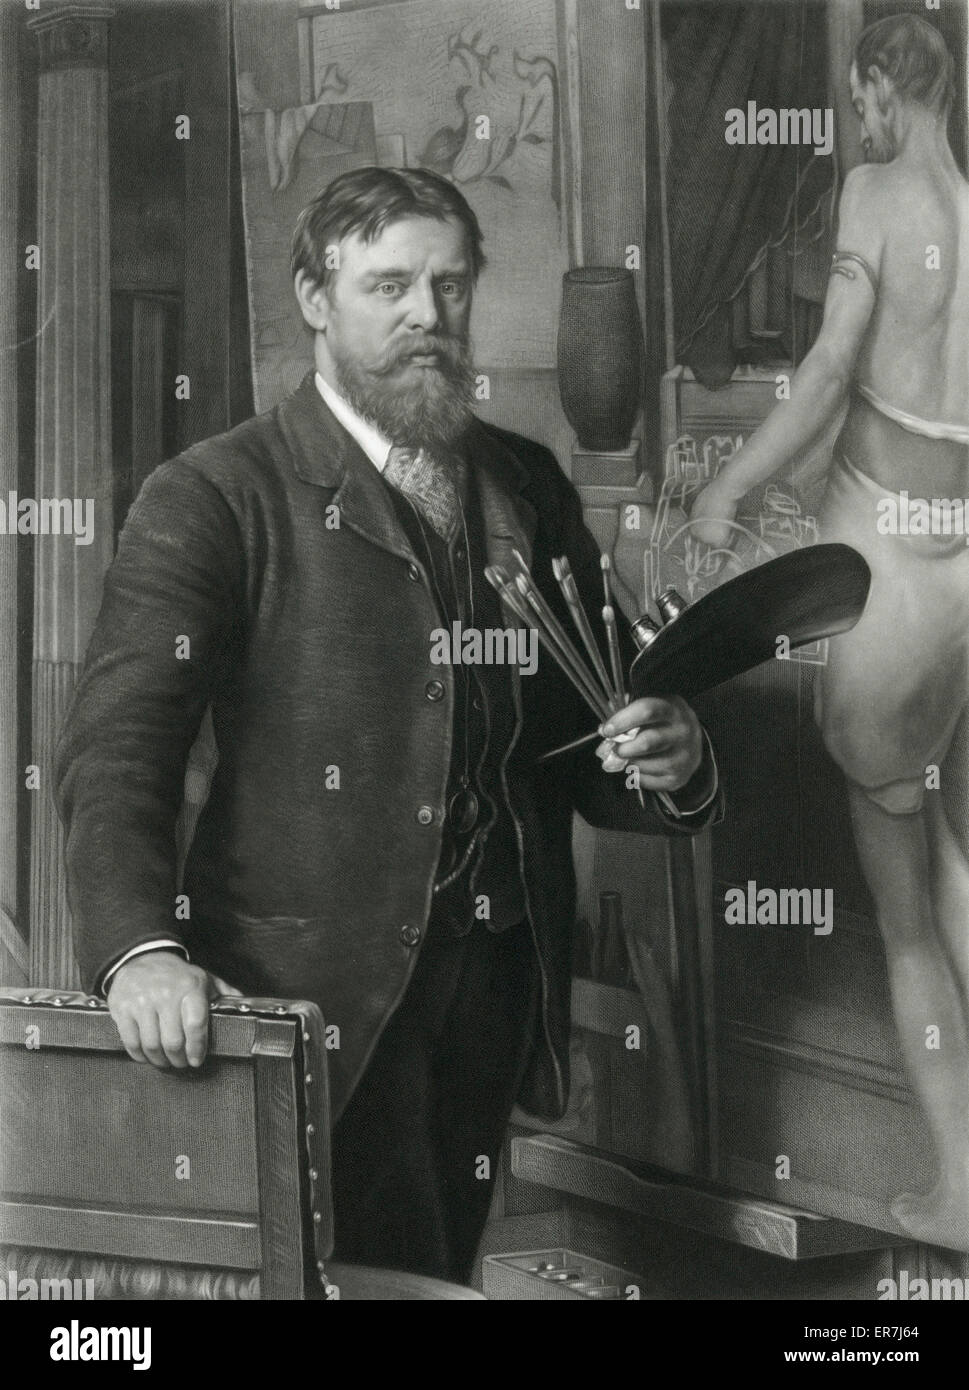 L Alma Tadema R.A. in his studio. Engraved by T L Atkinson. - Stock Image